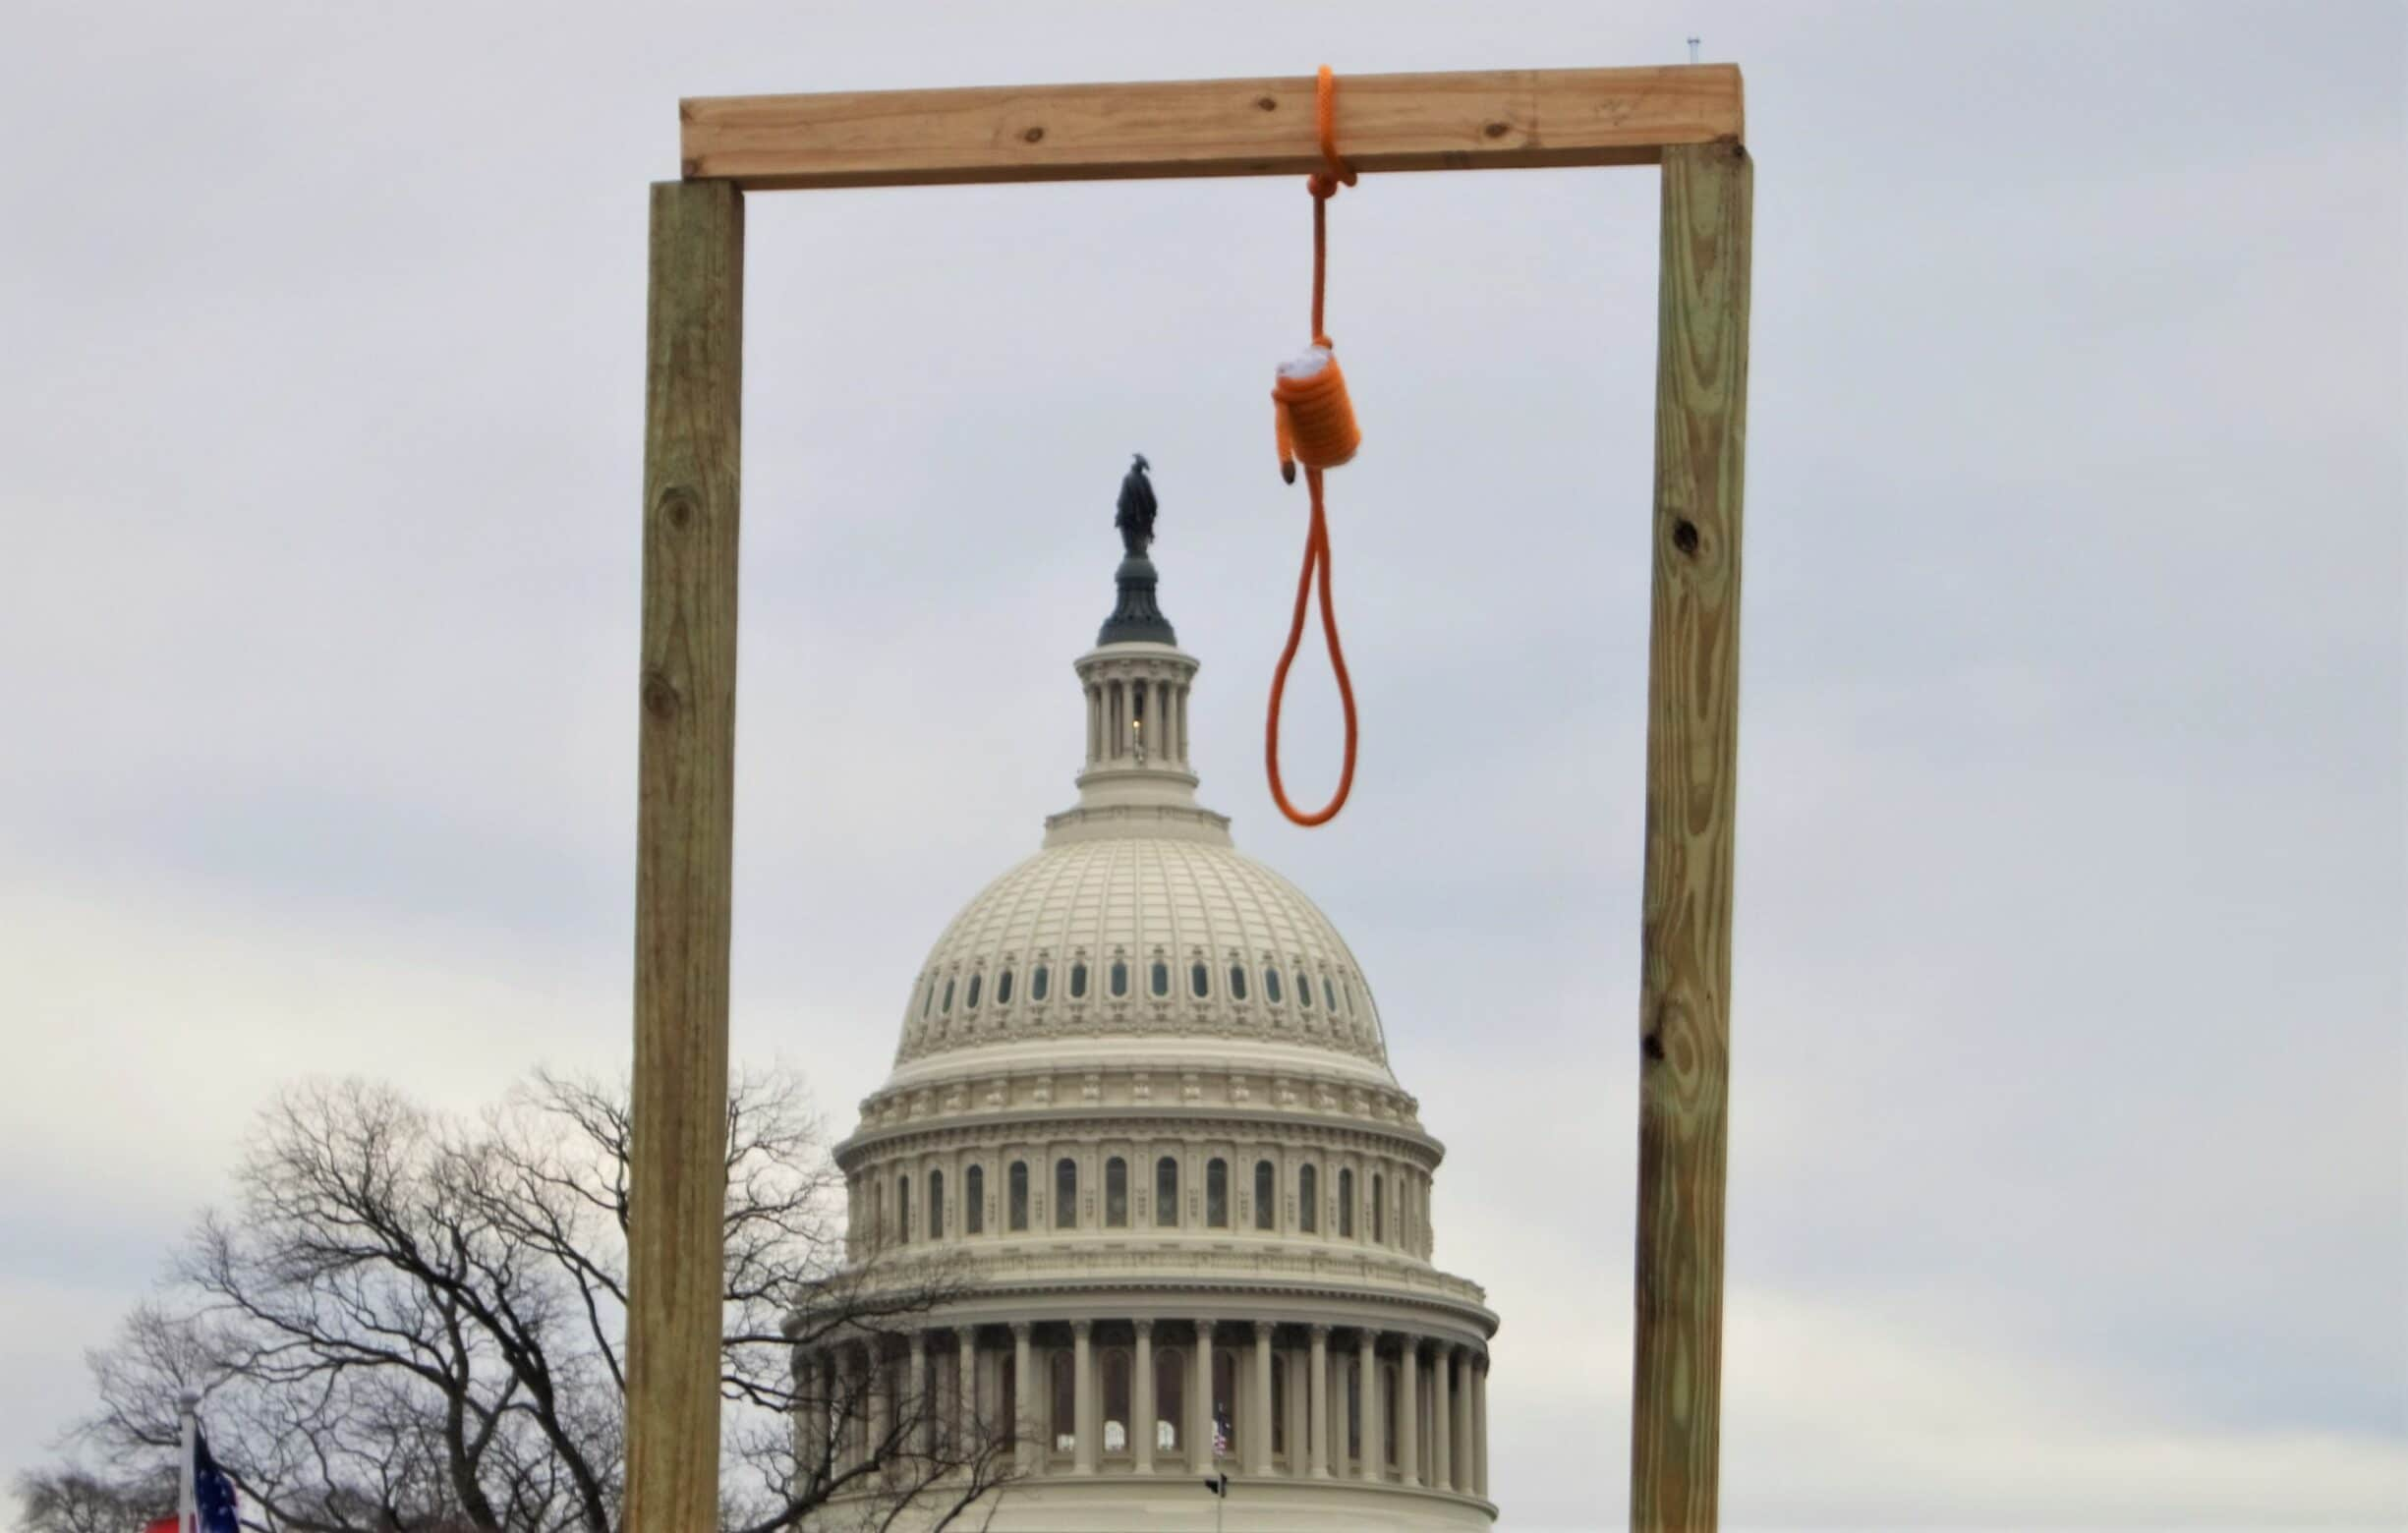 A gallows hangs near the United States Capitol during the 2021 storming of the United States Capitol, 6 January 2021. Photo: Tyler Merbler from USA. (CC BY 2.0).